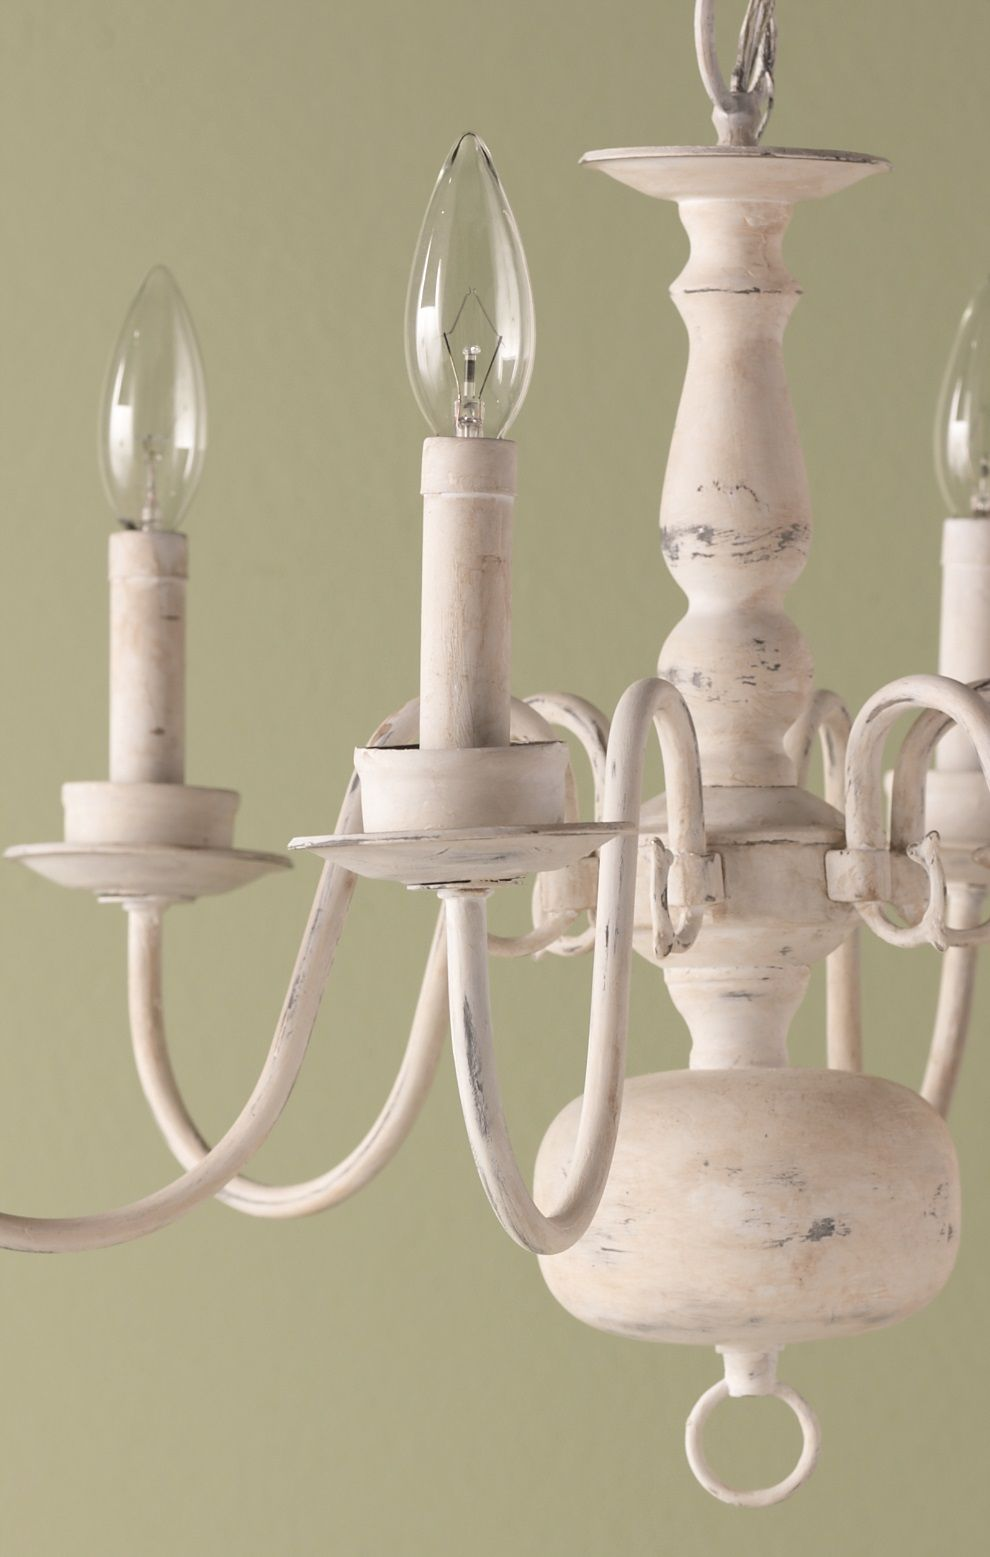 Martha stewart crafts vintage decor antique chandelier diy house martha stewart crafts vintage decor antique chandelier aloadofball Gallery